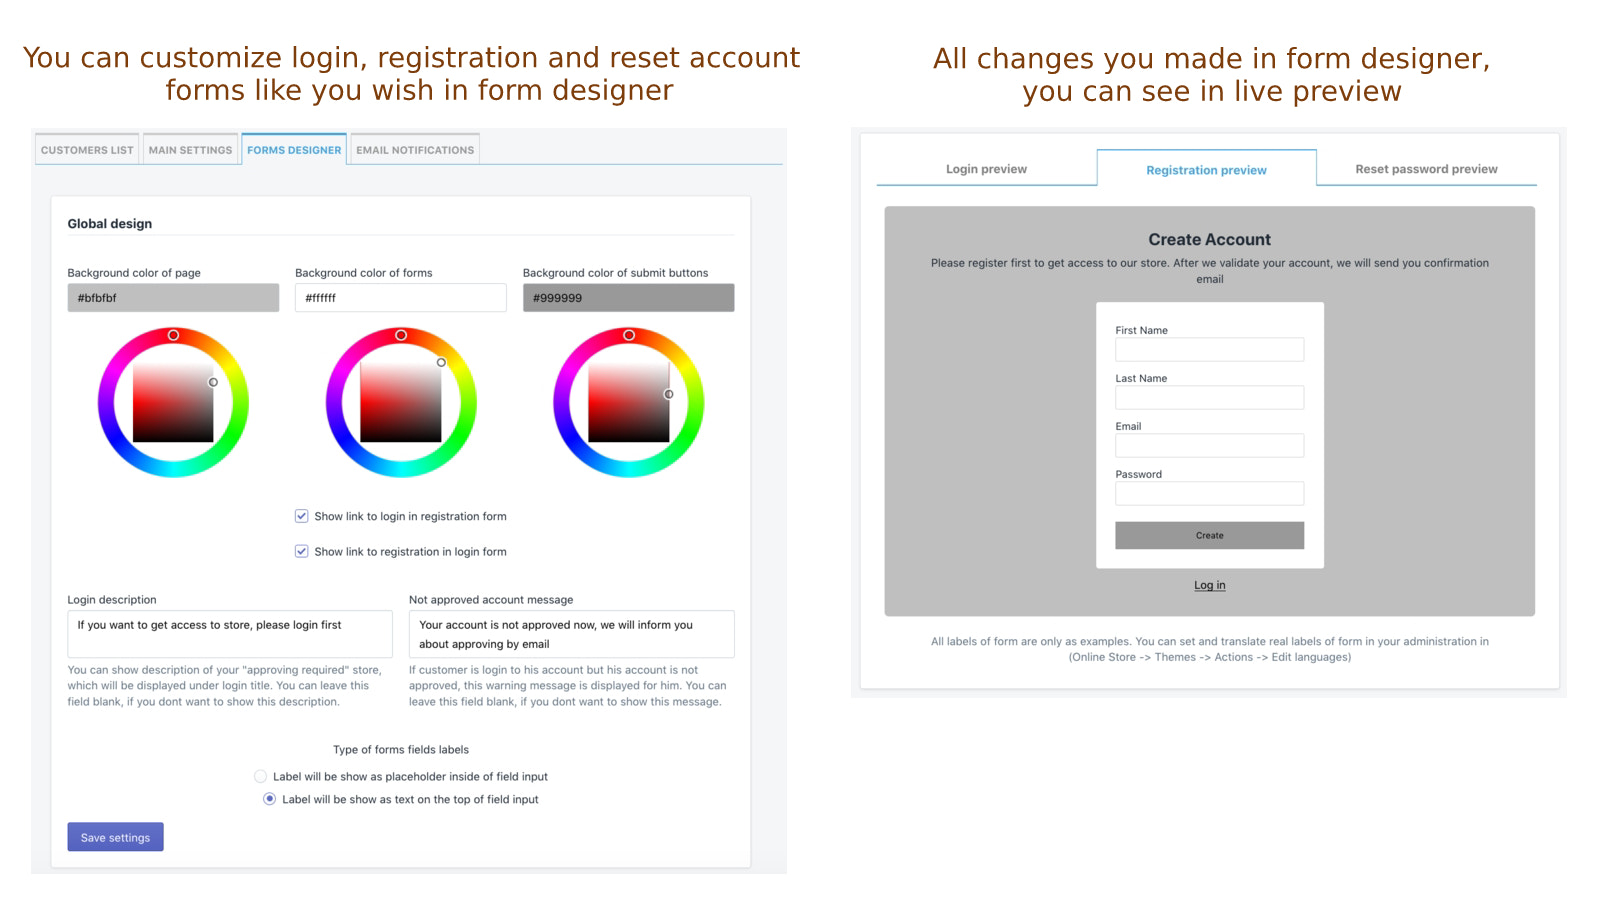 You can design forms for login, registration and reset account